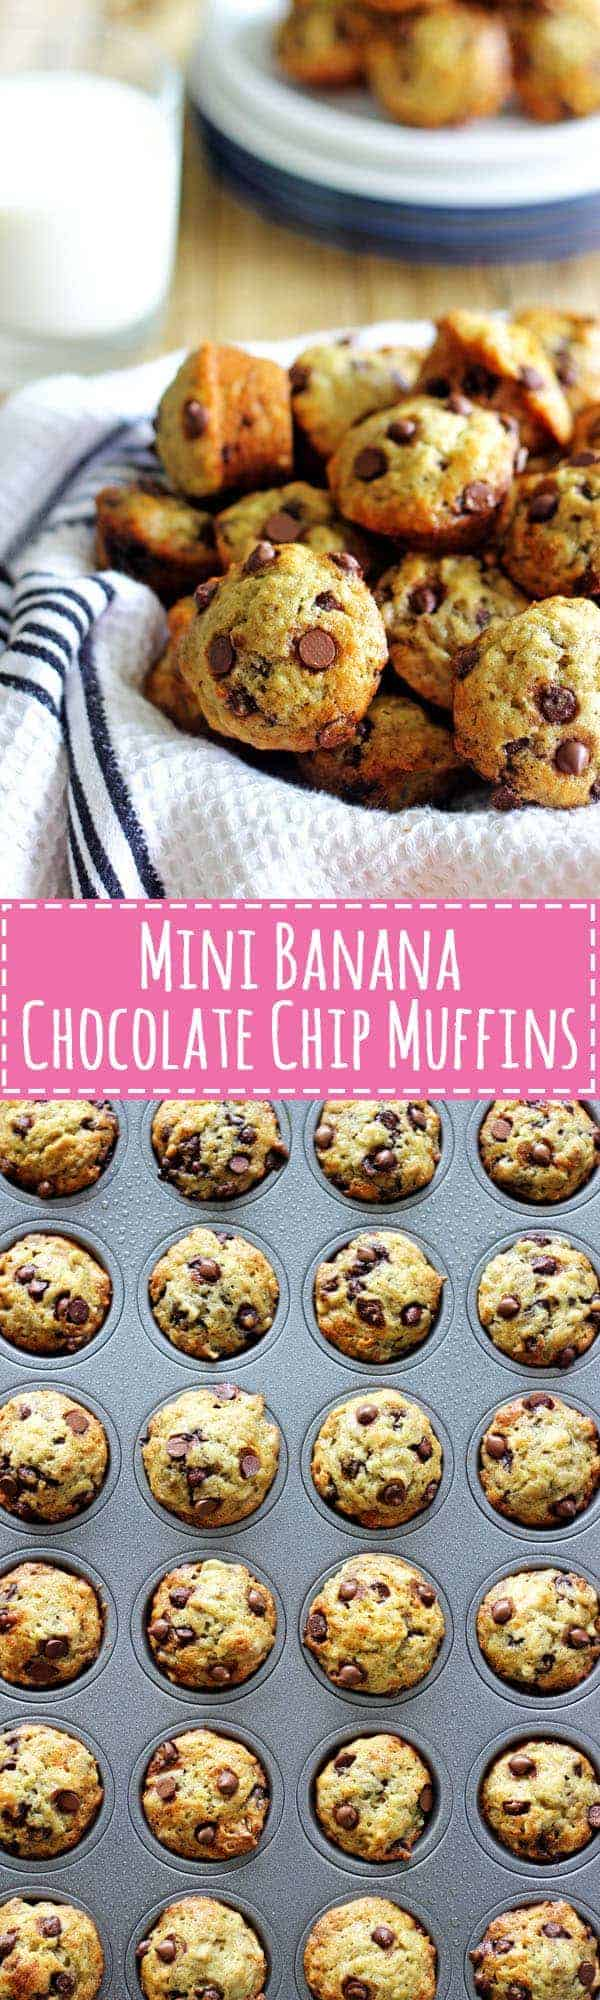 Mini Banana Chocolate Chip Muffins - perfect for lunchboxes and little hands, these mini muffins are packed full of banana chocolate goodness!   thekiwicountrygirl.com